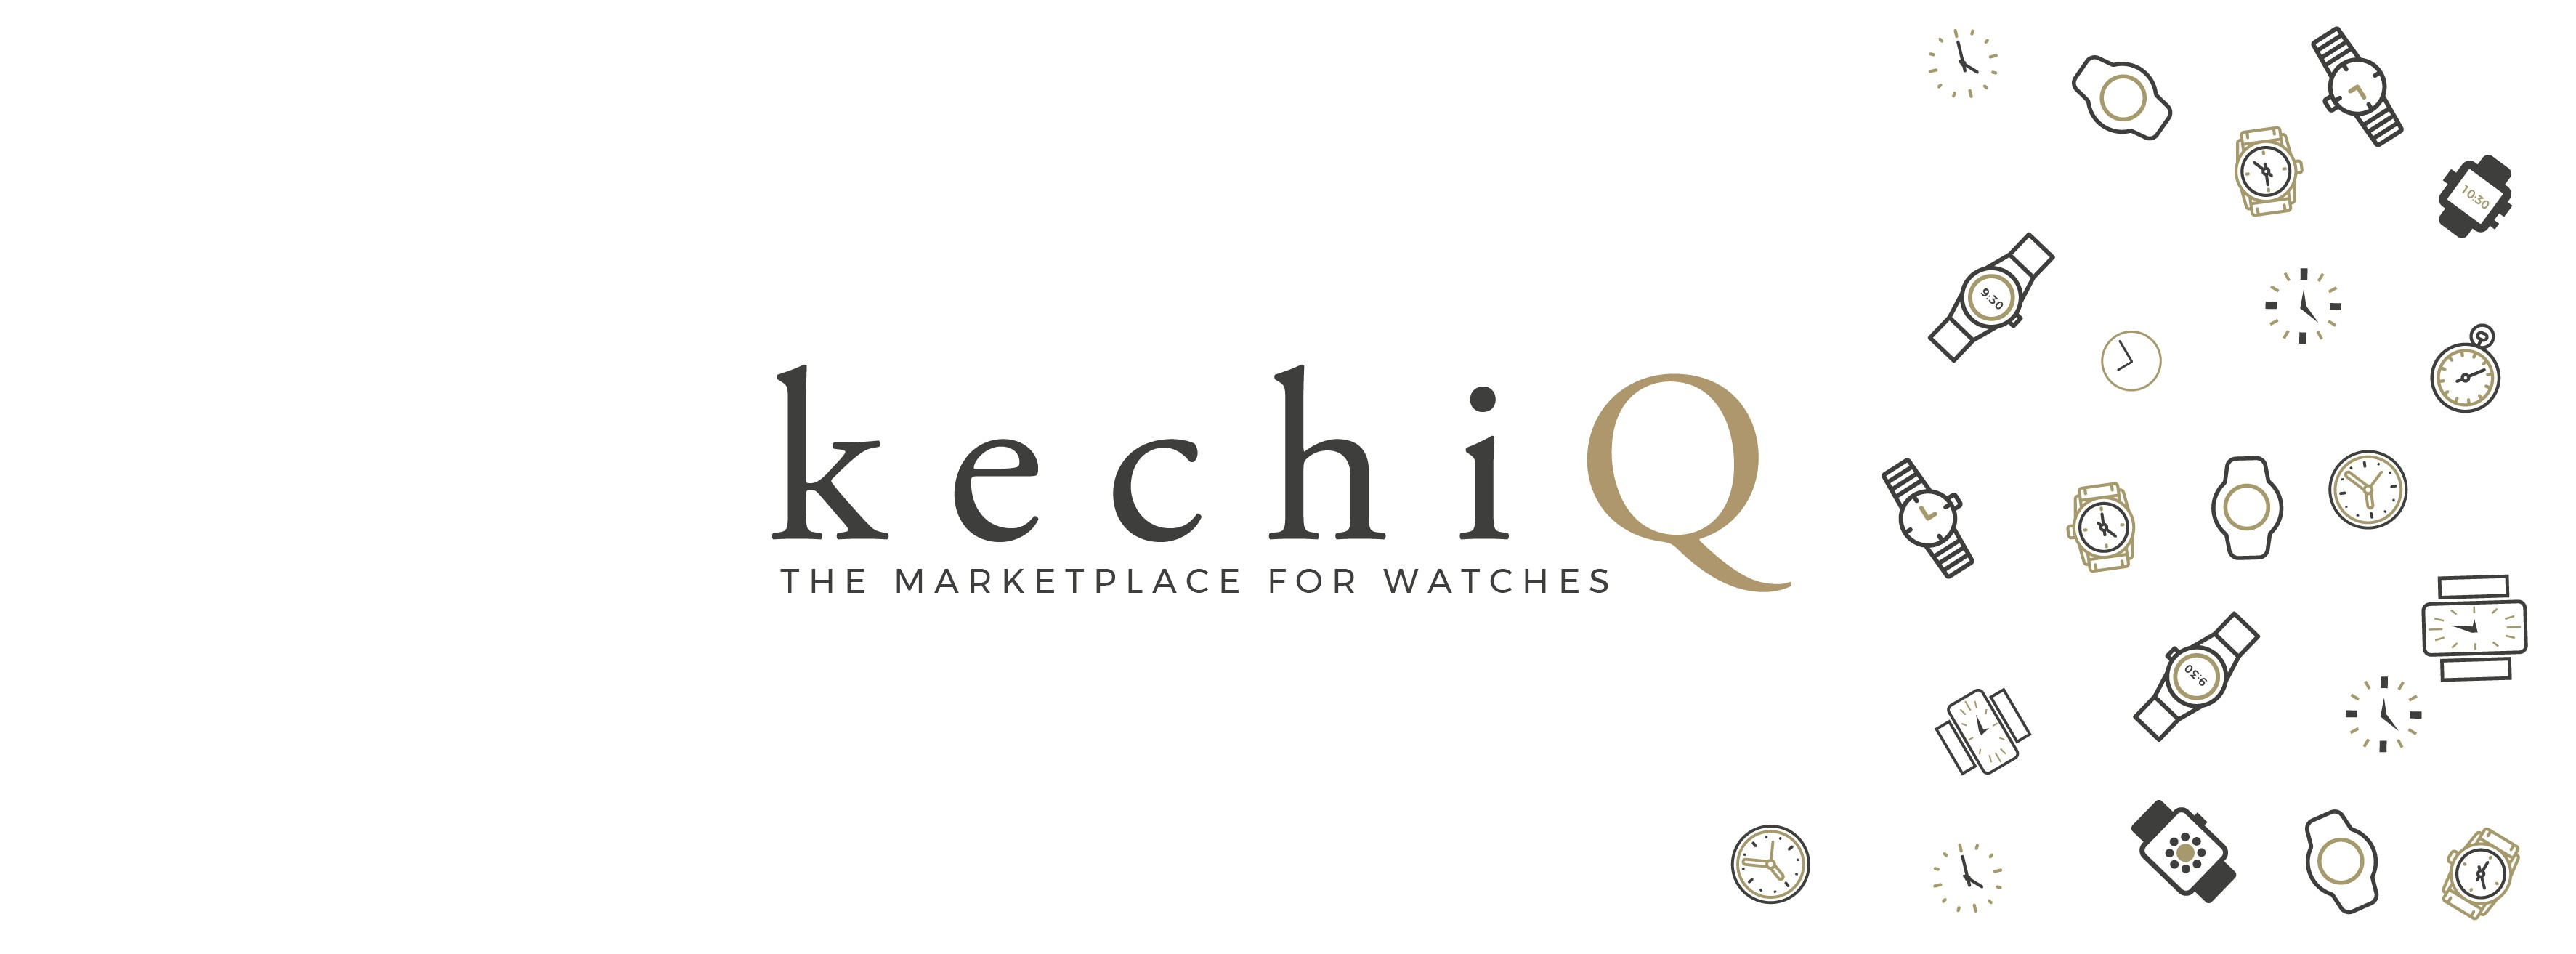 Kechiq - The marketplace for watches | LinkedIn